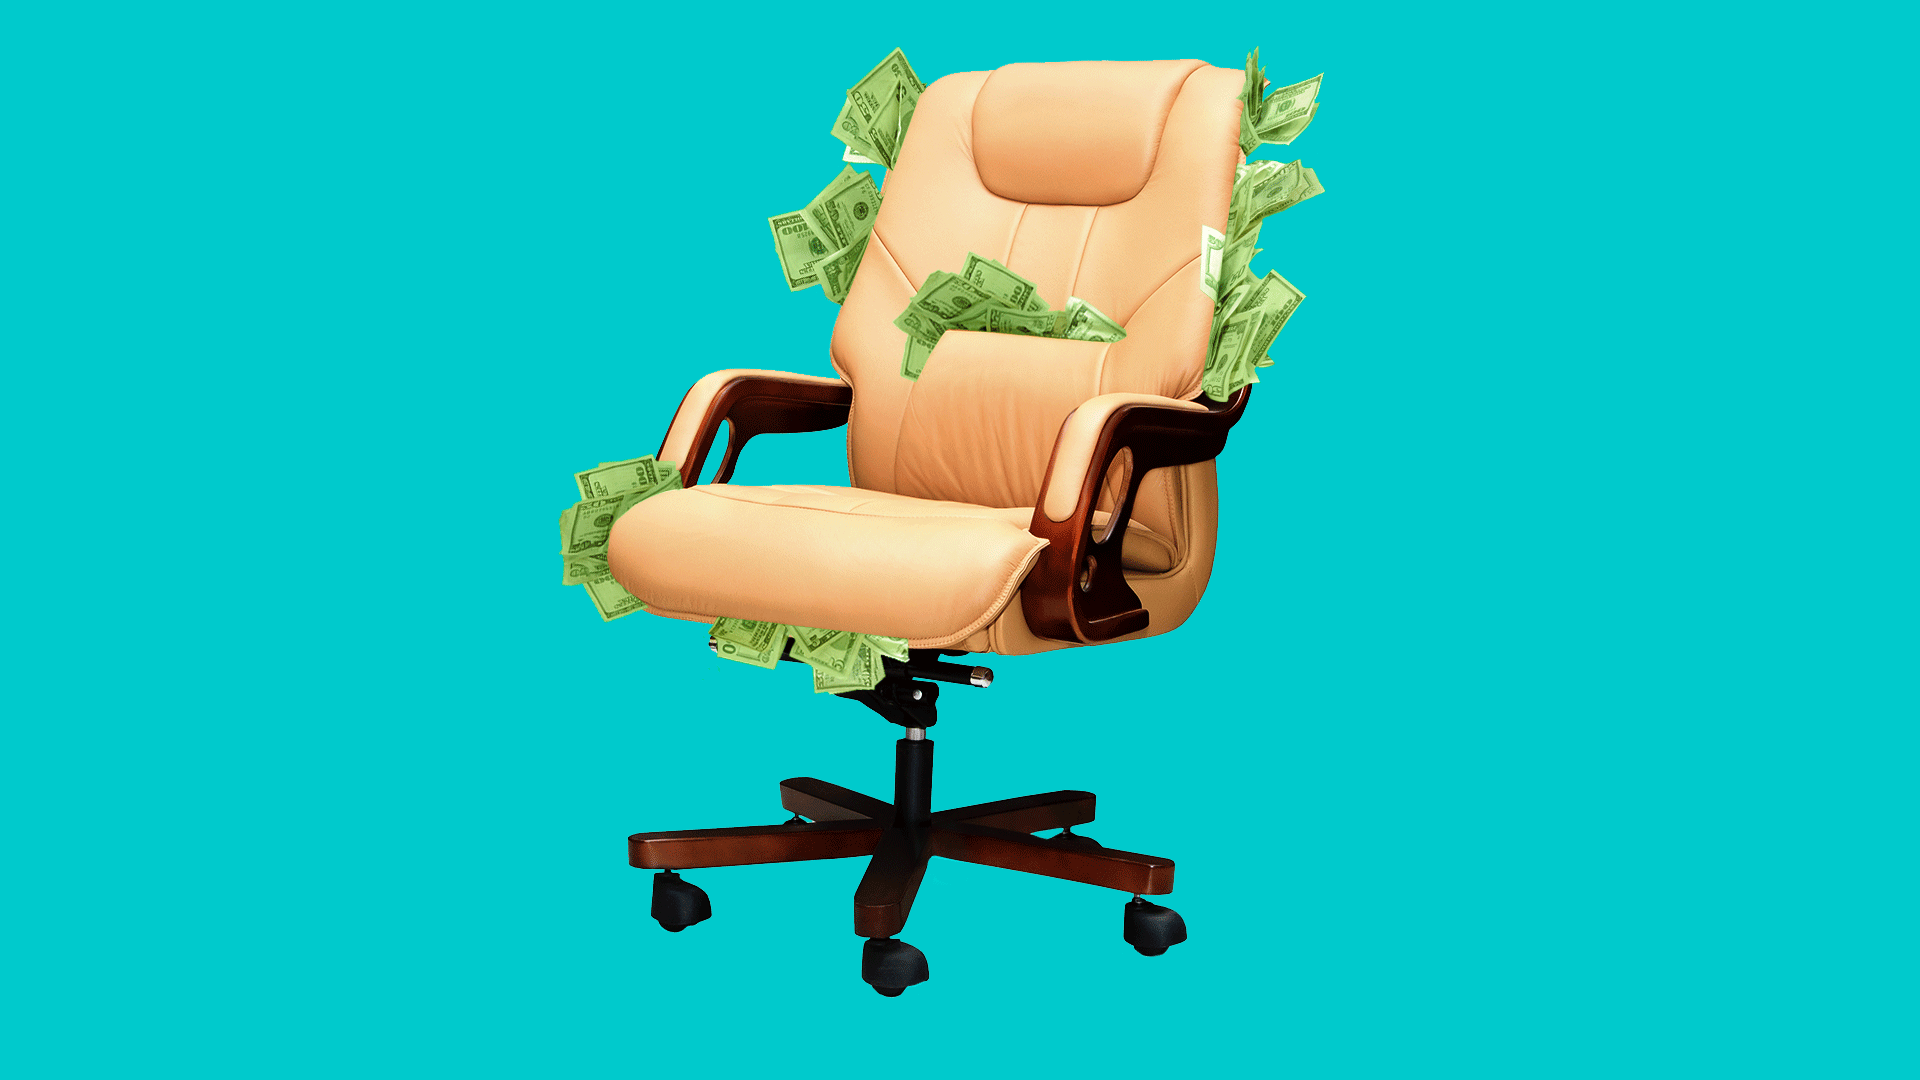 In this illustration, an office chair sits overstuffed with money.